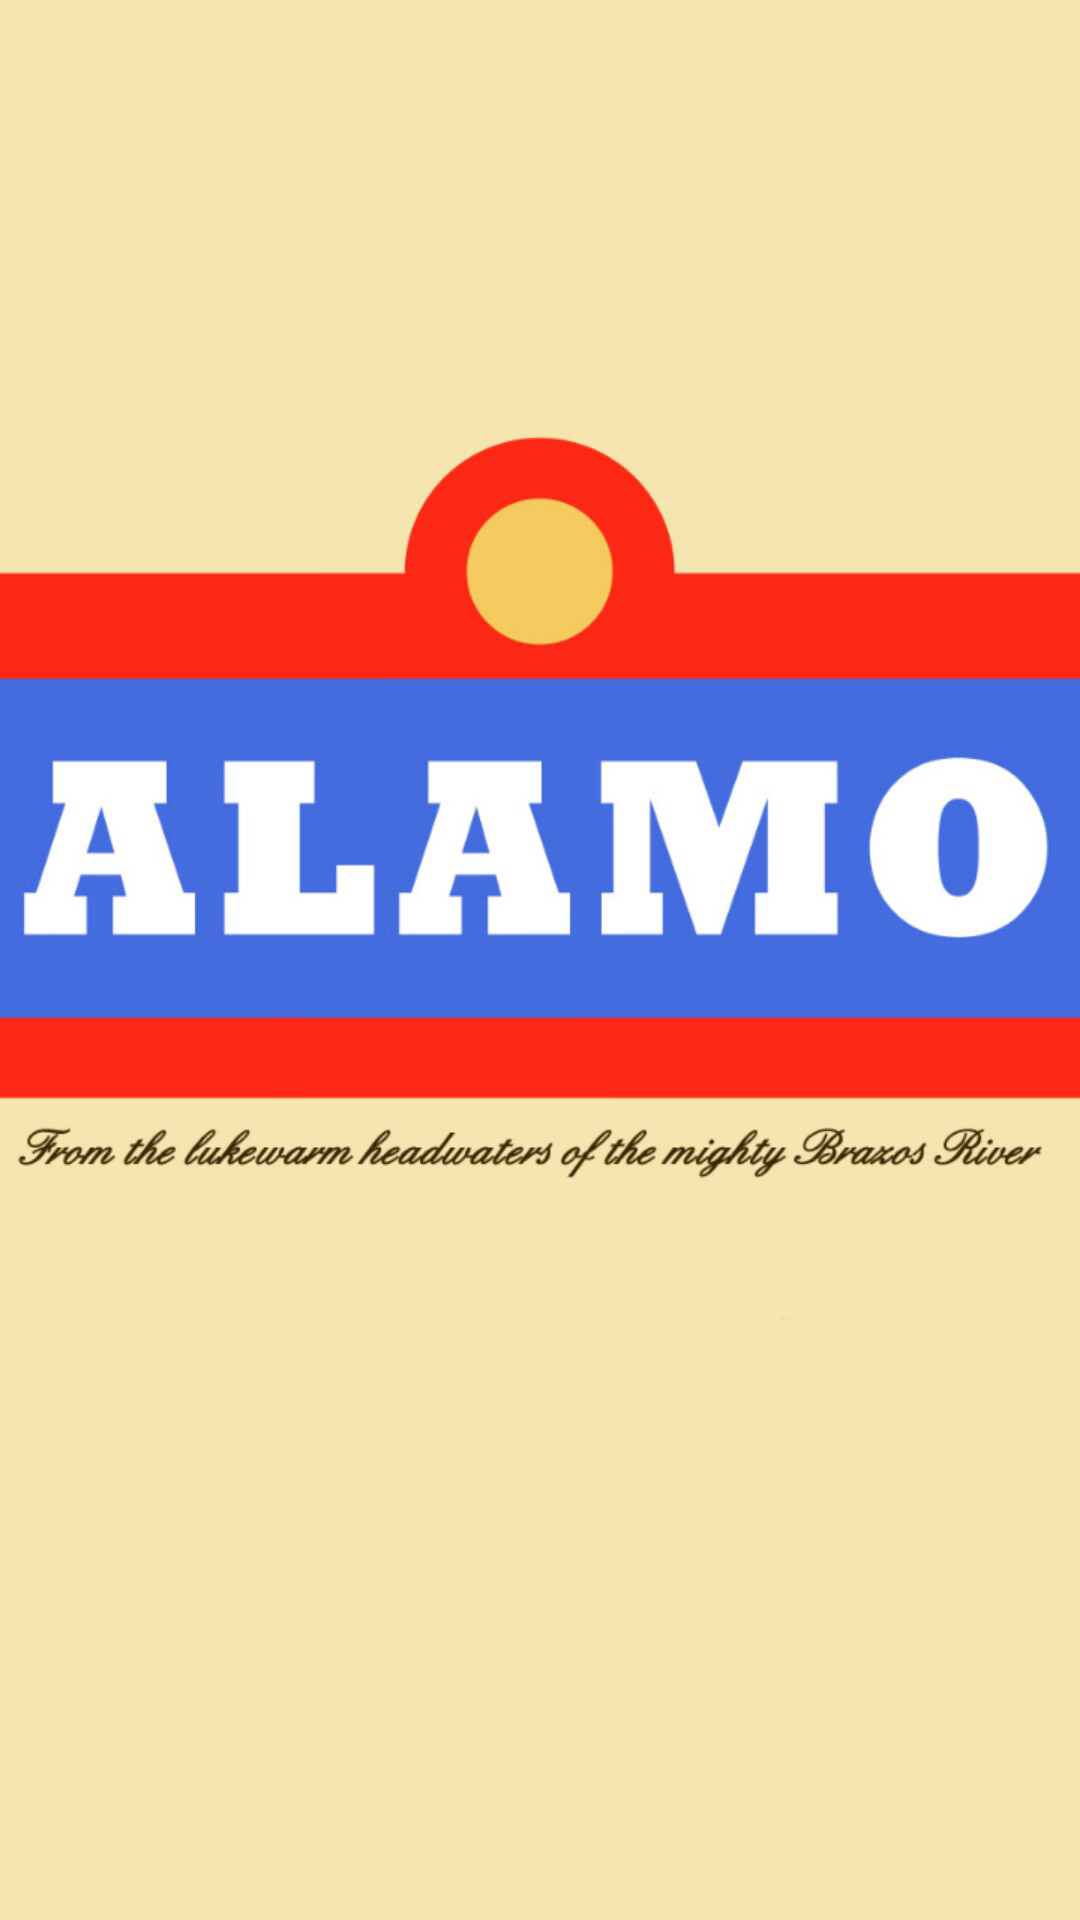 I made an Alamo beer phone wallpaper from an image I found.